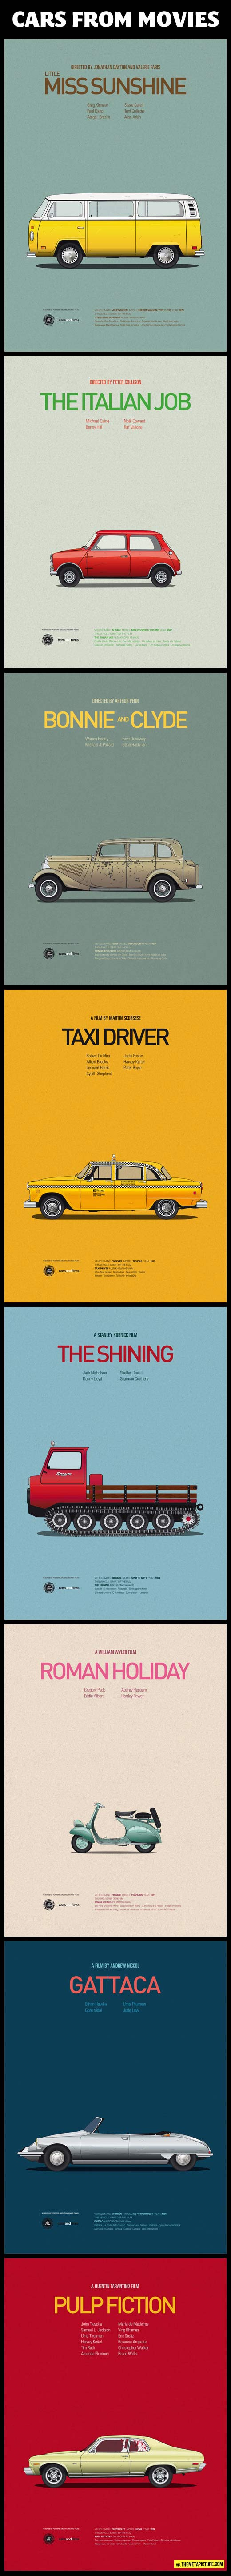 funny-cars-movies-Miss-Sunshine